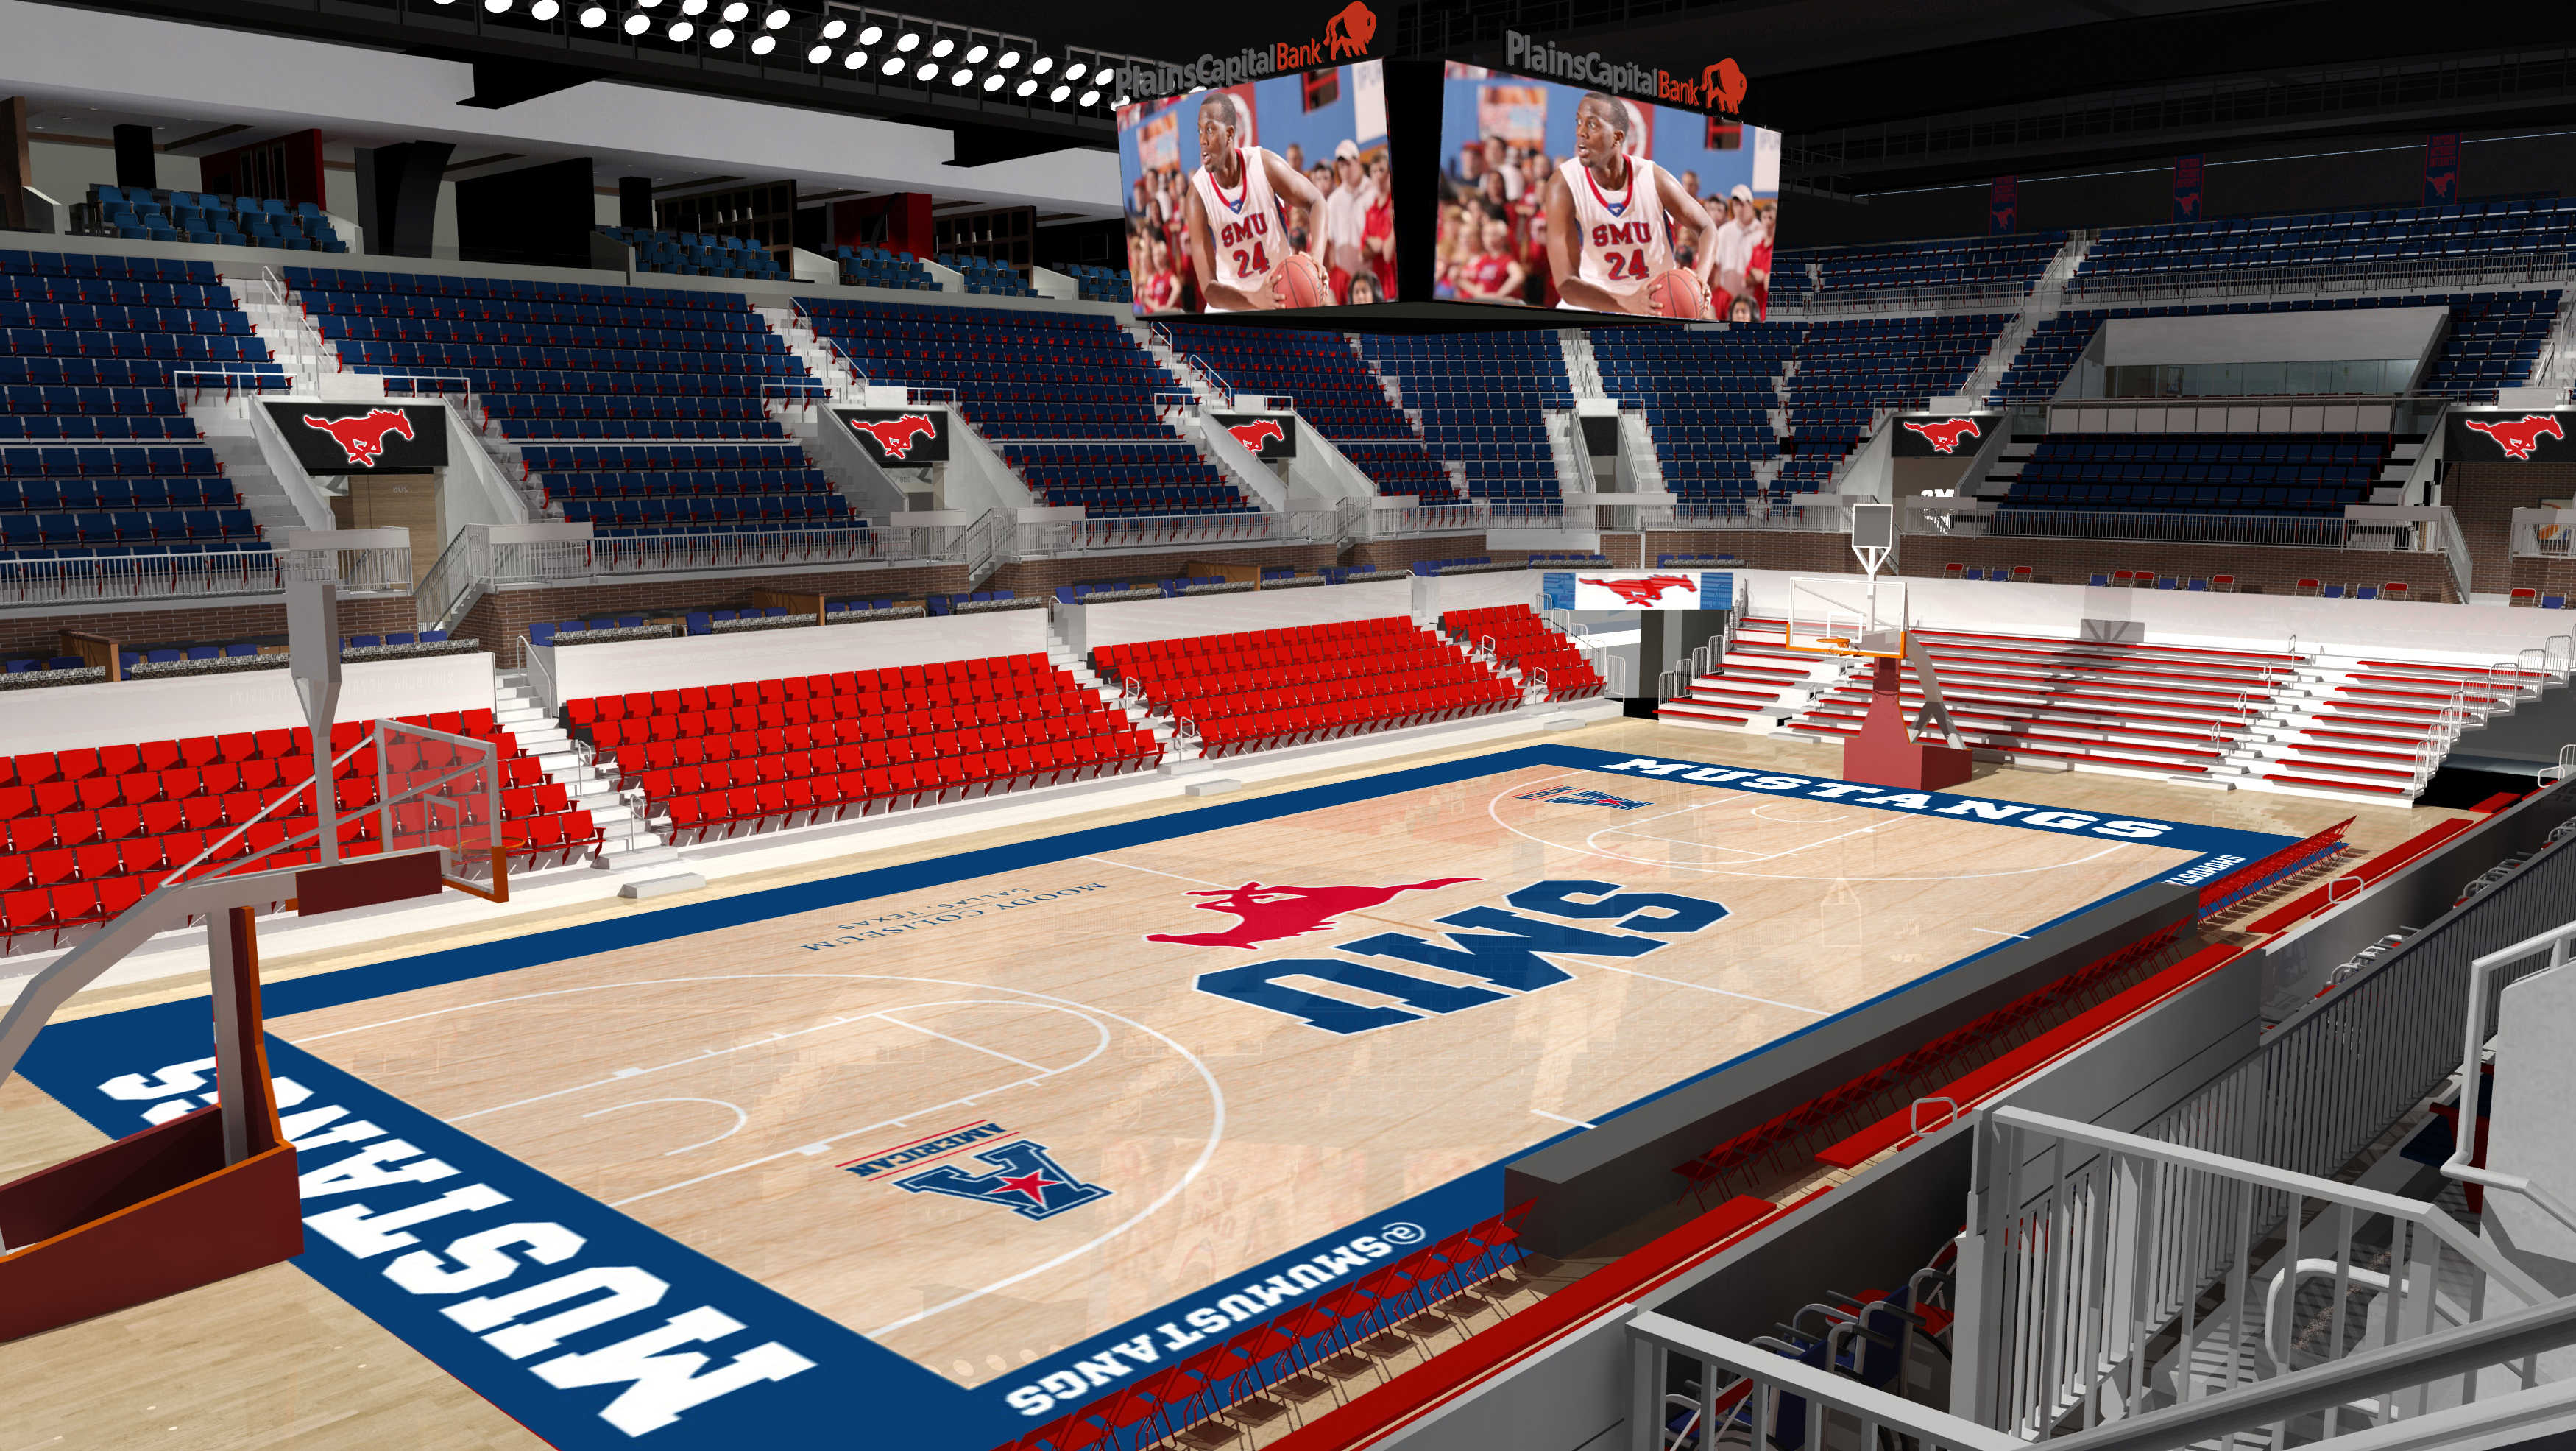 Artist's rendering of the new floor in SMU's renovated Moody Coliseum